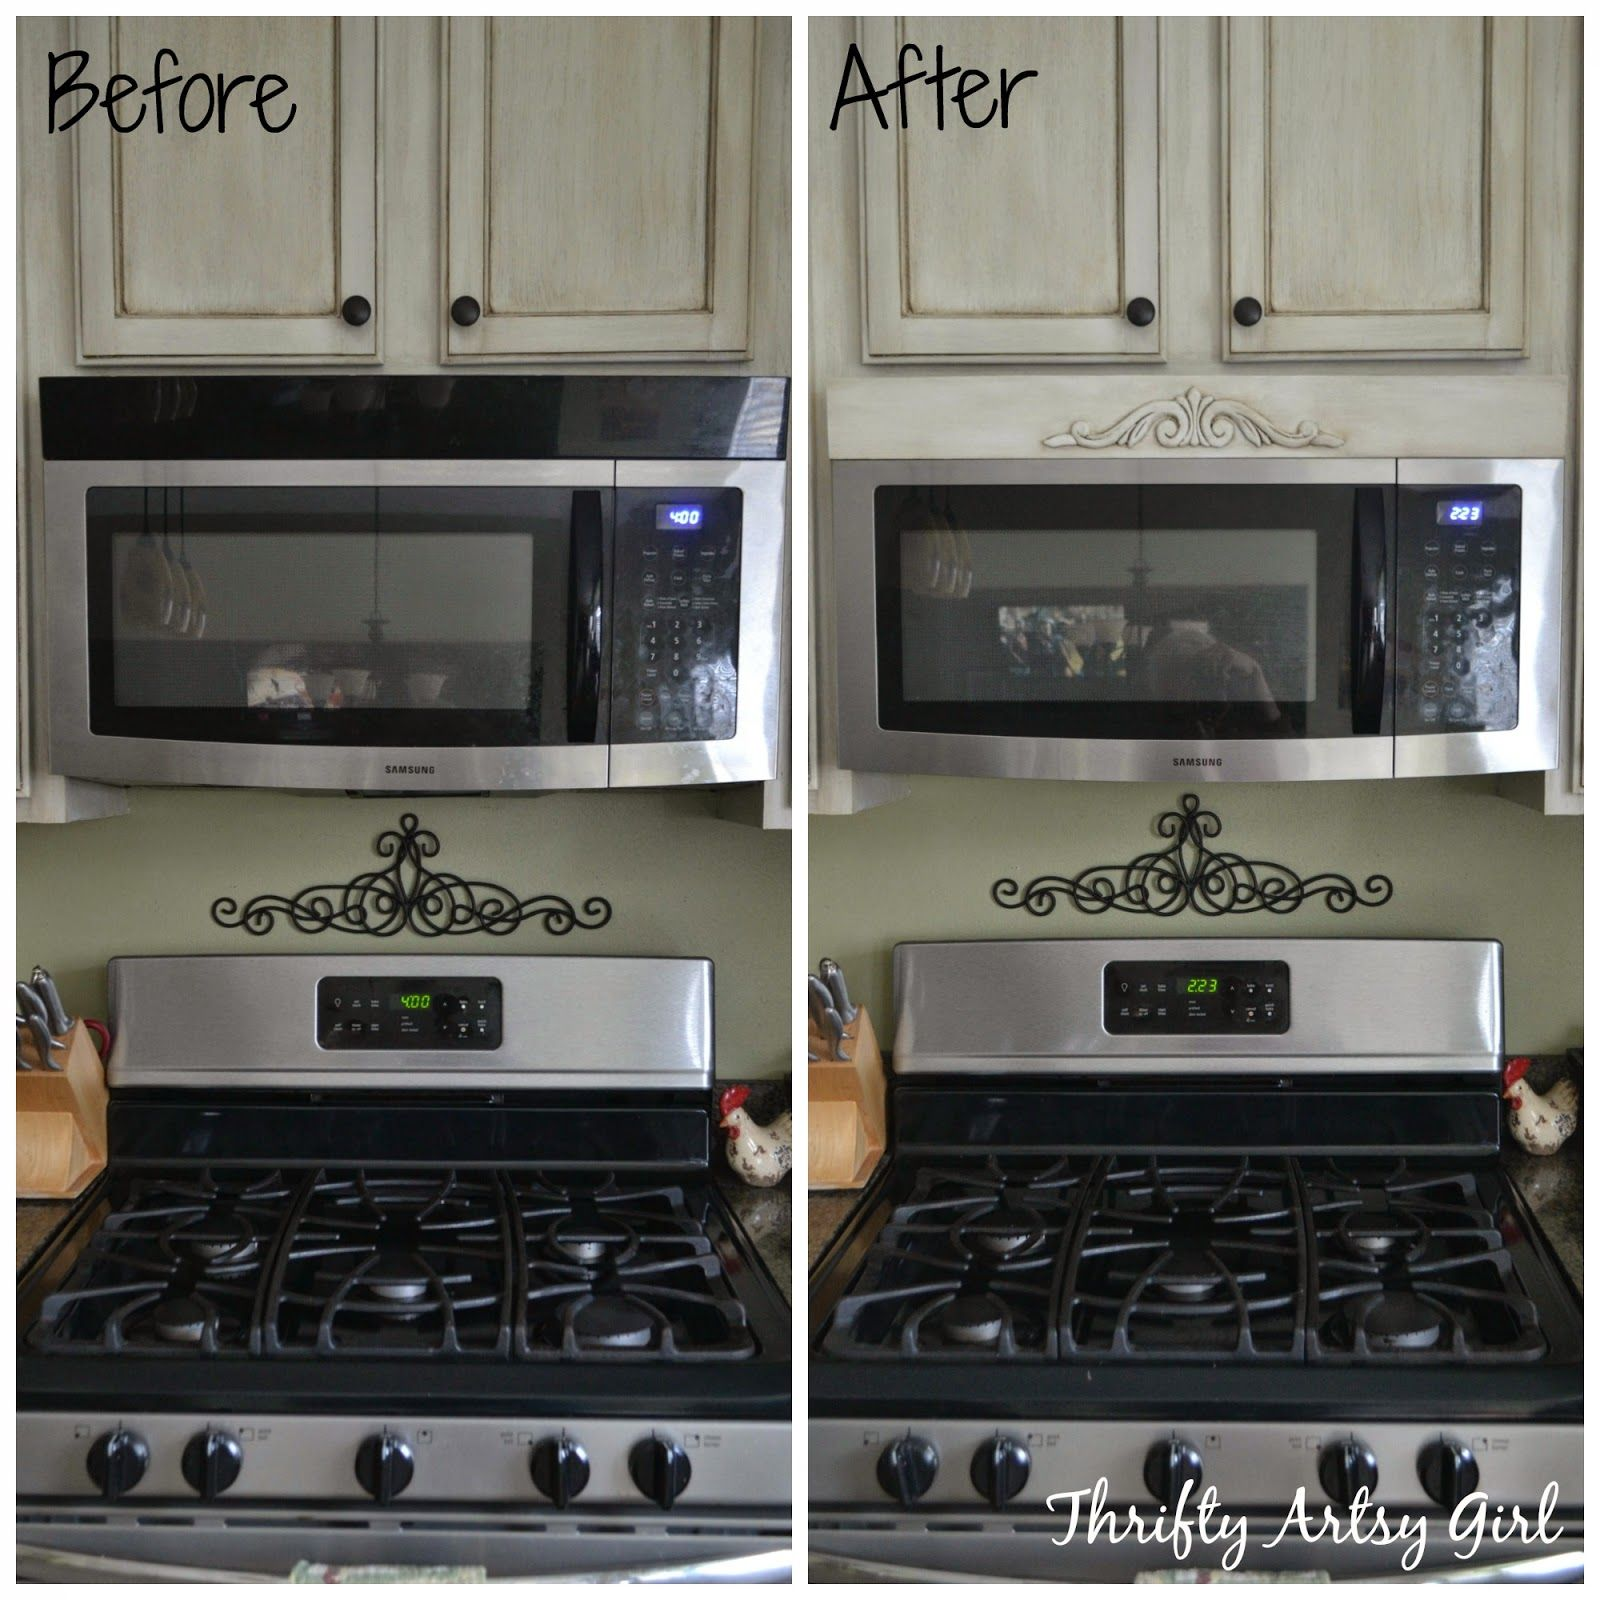 Diy Tuscan Above The Range Microwave Hood Vent Update Thrifty Artsy